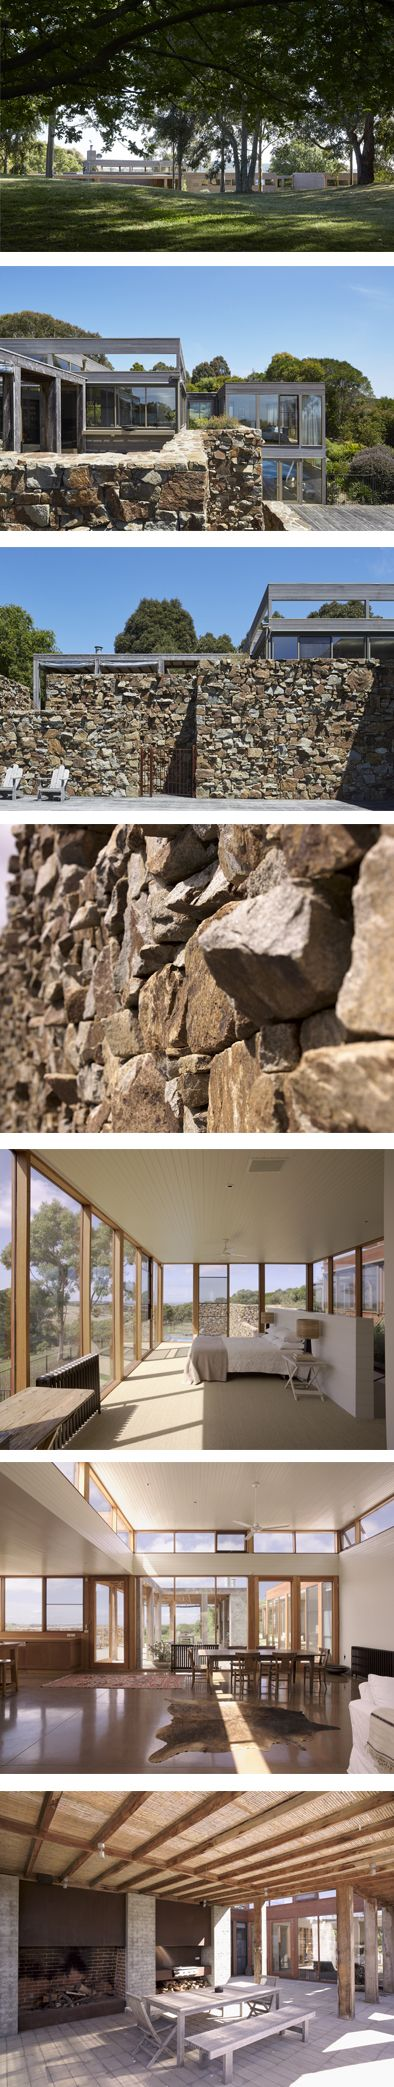 Country estate in Mornington Peninsula at Whitehall Road Residence by BE architecture made from rough stack stone from a local quarry